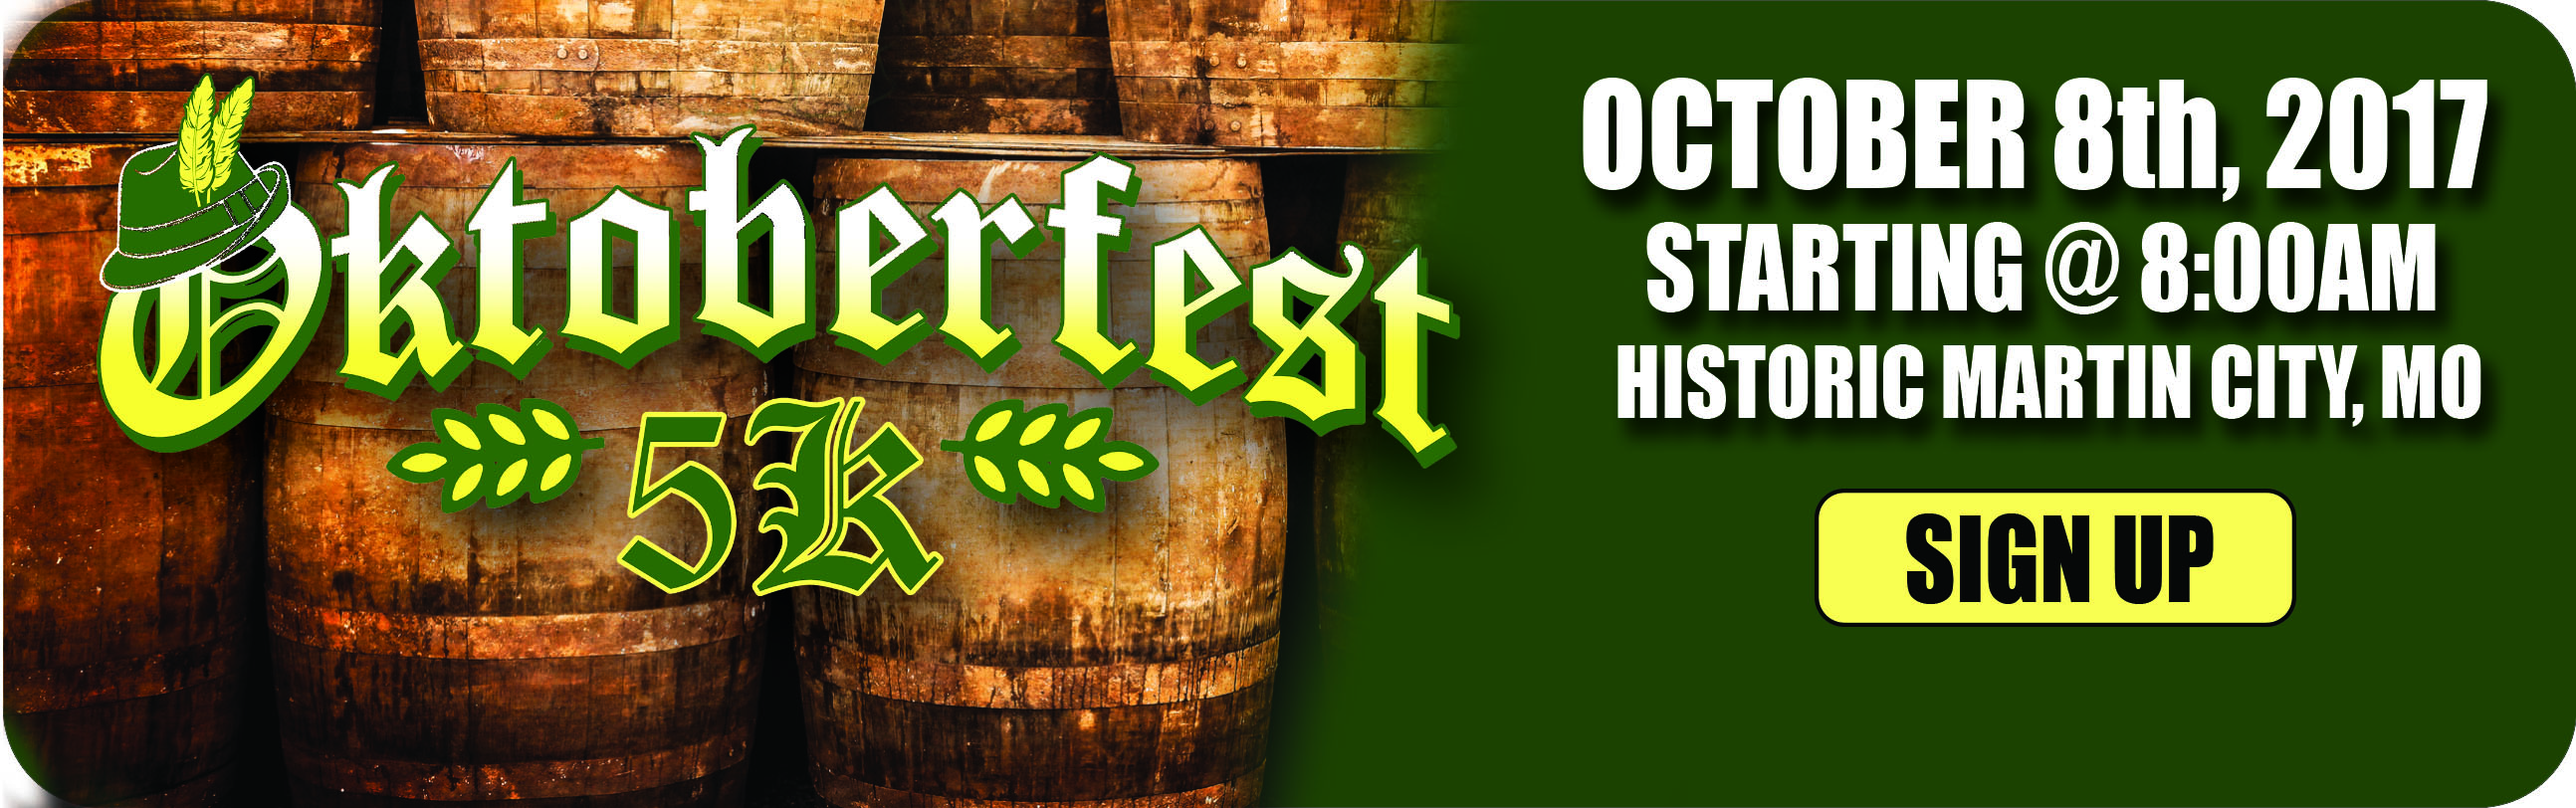 OKTOBERFEST BANNER FOR KCRC EVENT PAGE on 1507420800